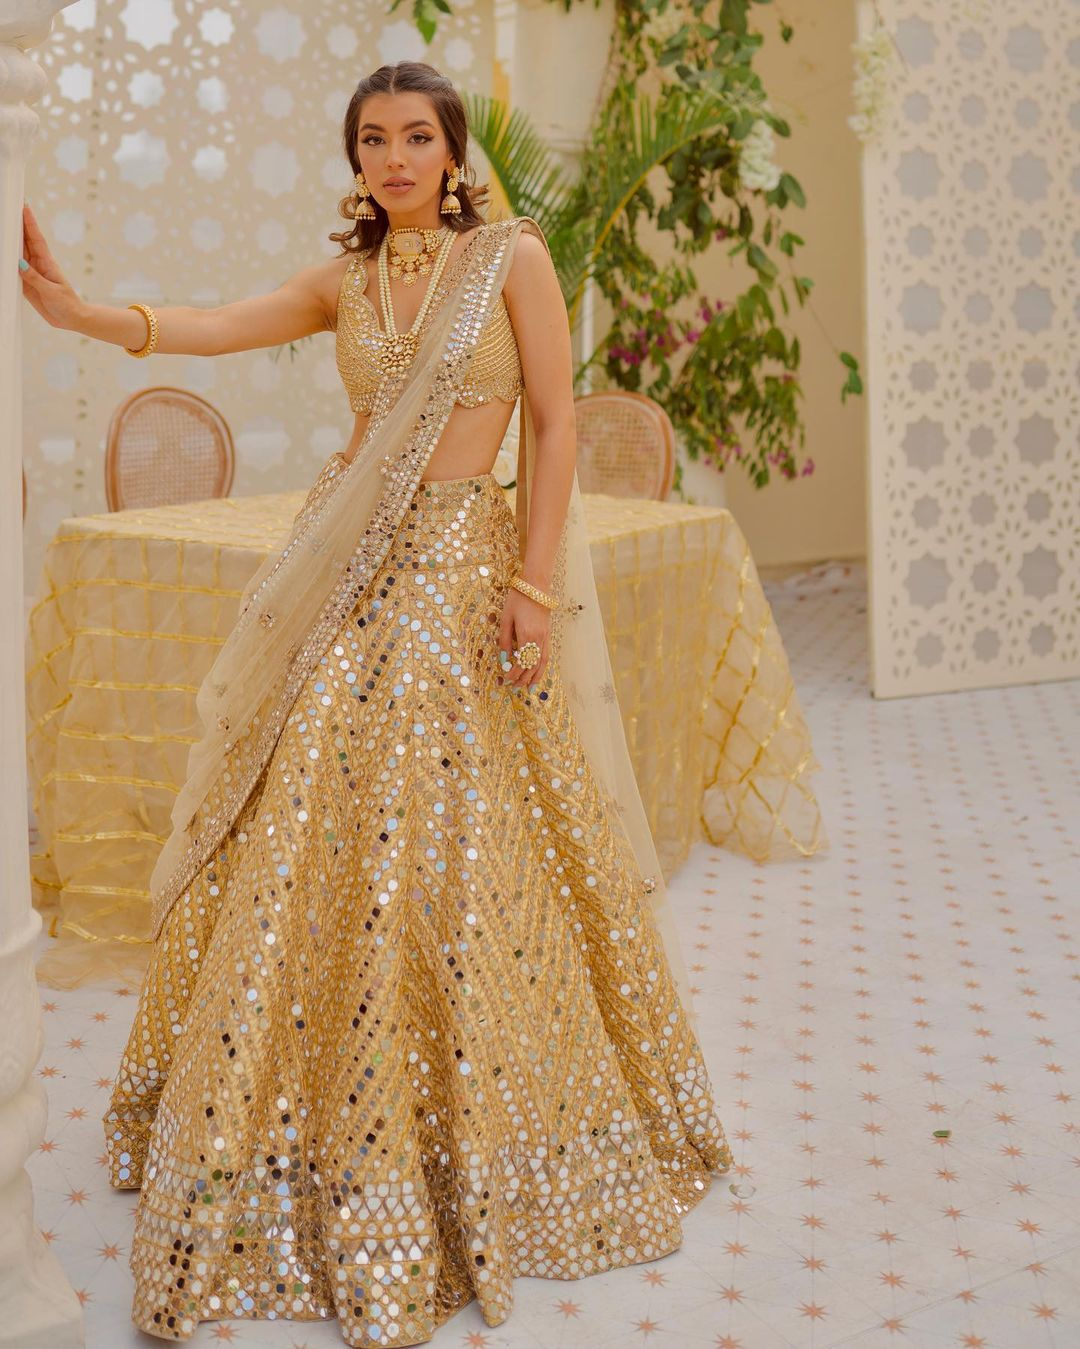 Stunning off white bridal lehenga design with hand embroidery mirror work.  2021-06-11